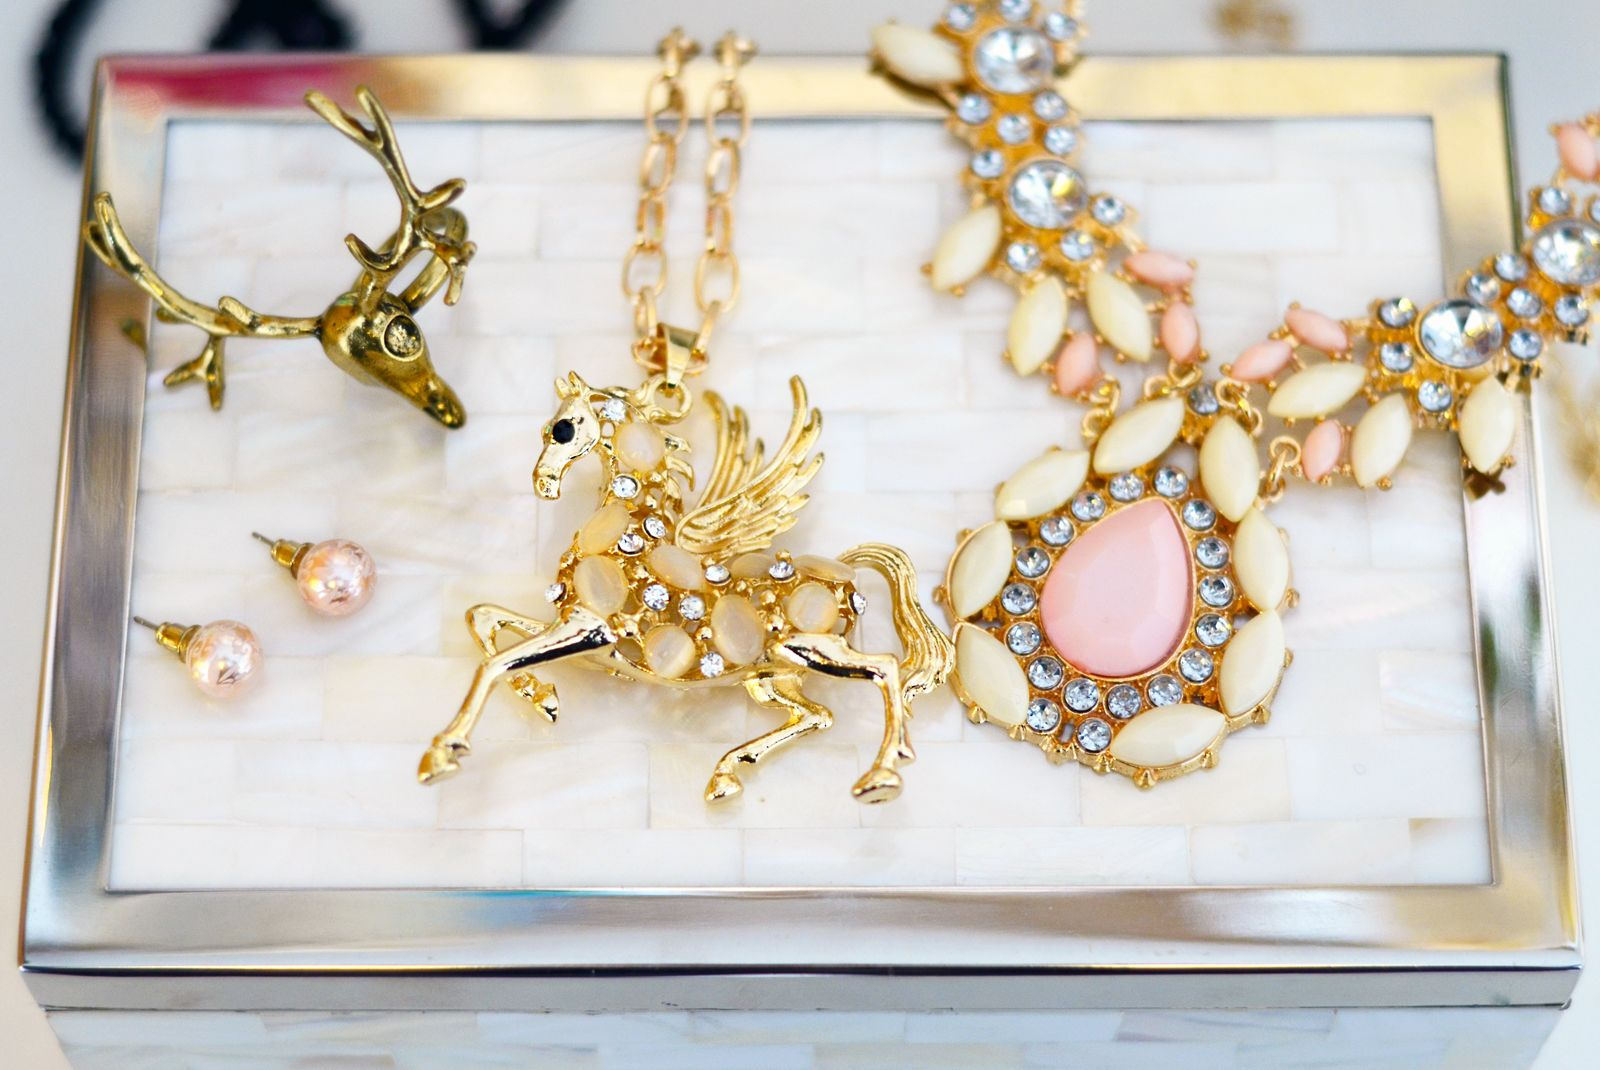 How to clean and care for your fashion jewellery gold deer